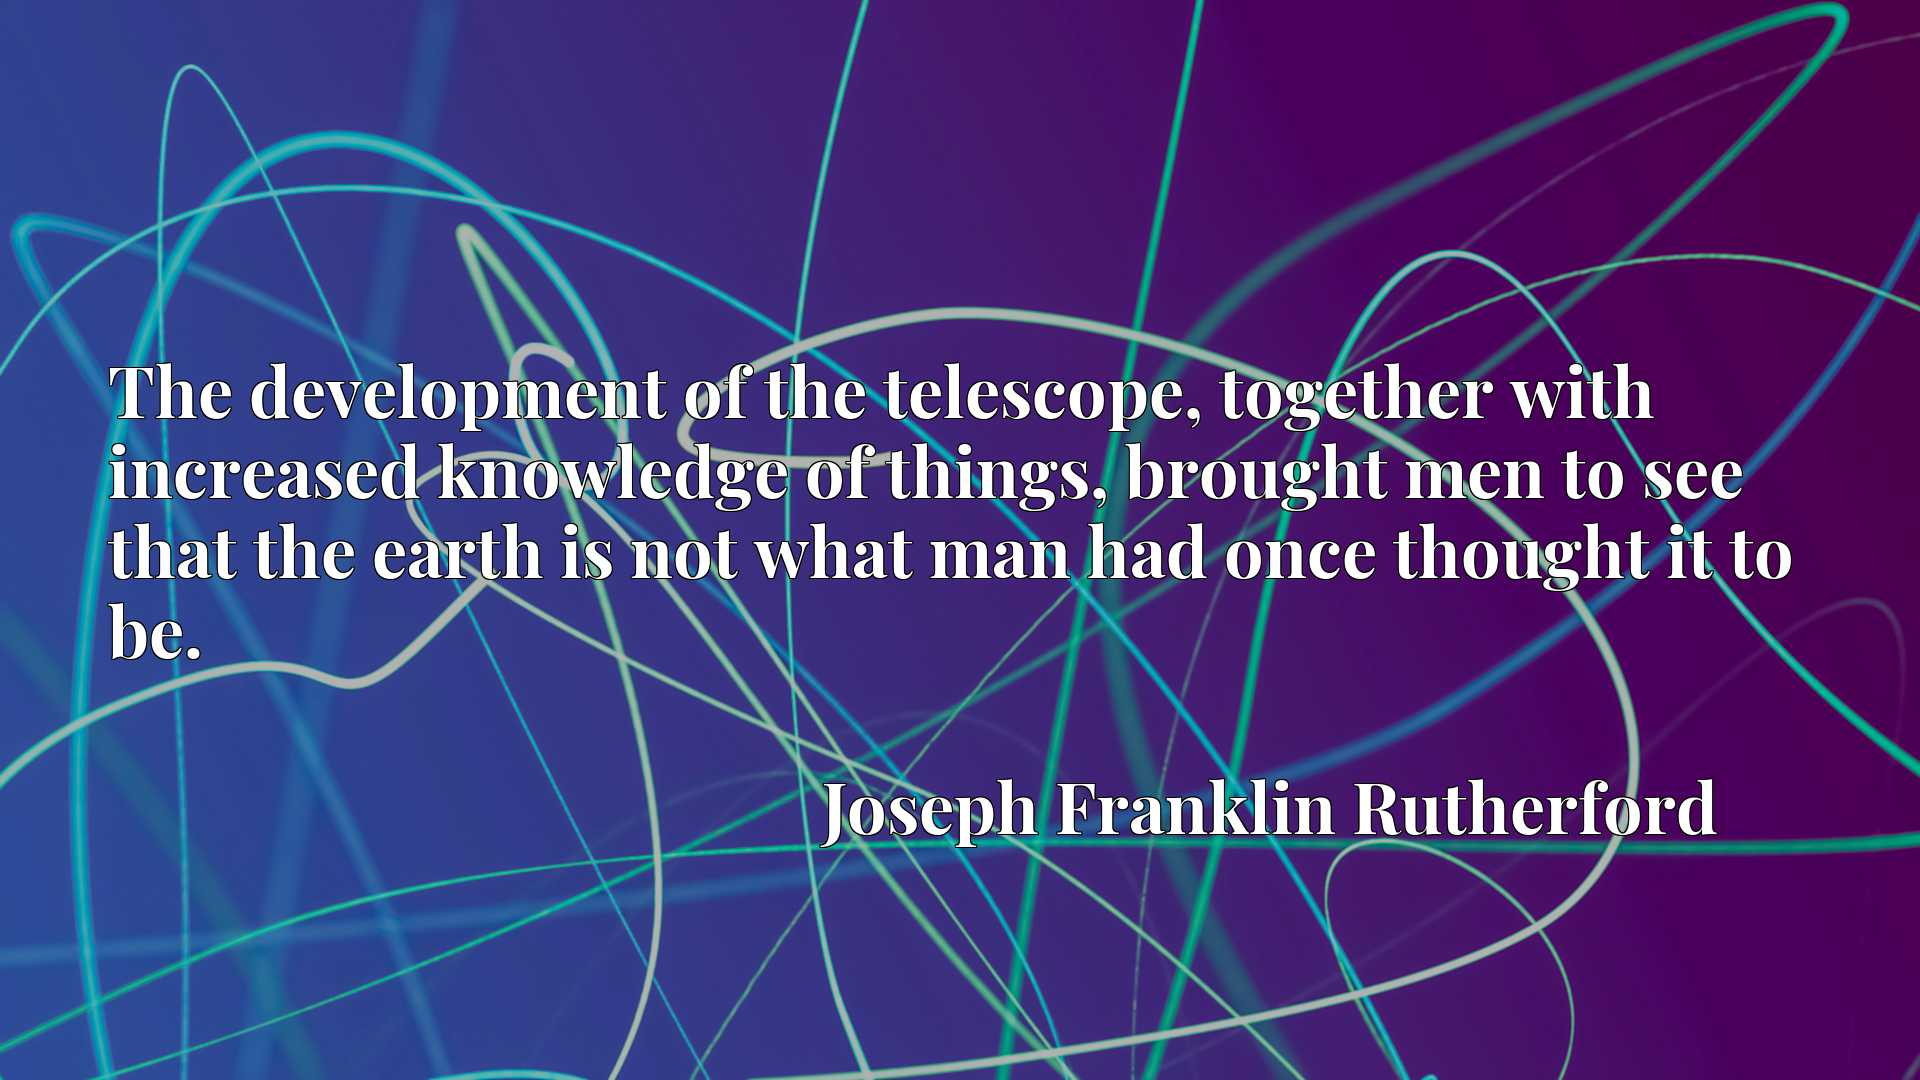 Quote Picture :The development of the telescope, together with increased knowledge of things, brought men to see that the earth is not what man had once thought it to be.